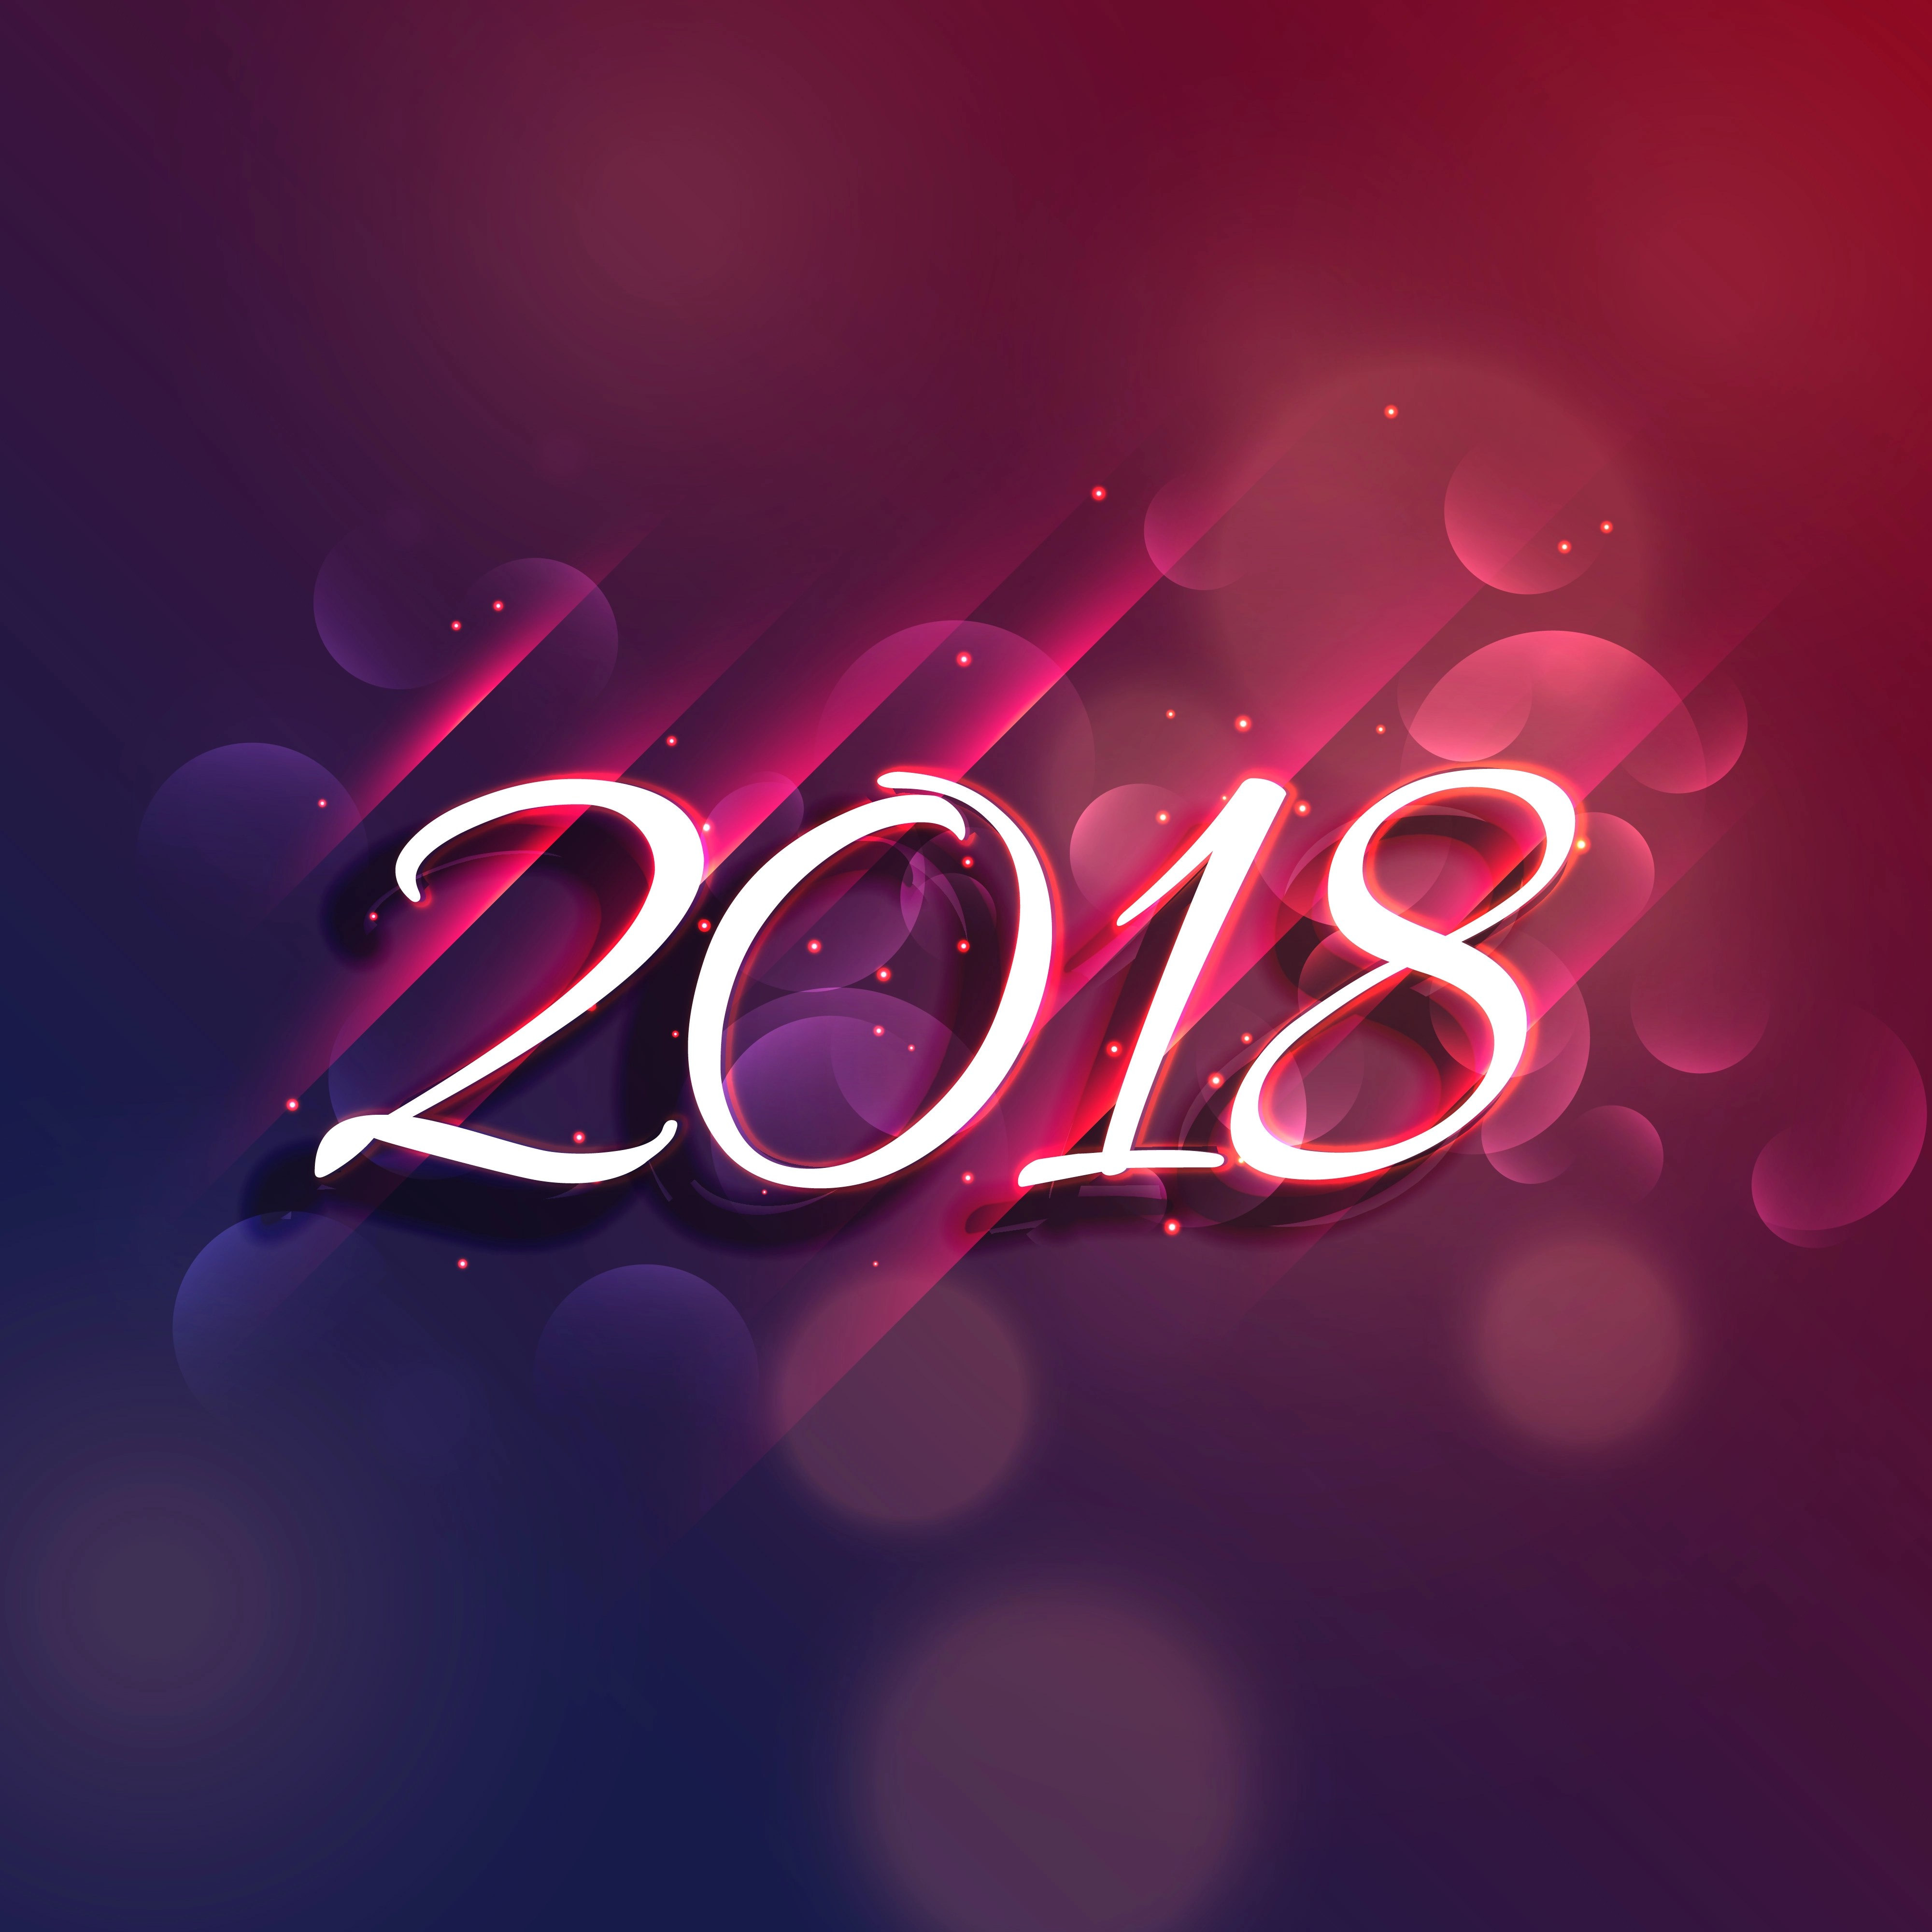 Vector Shiny New Year Greeting Design